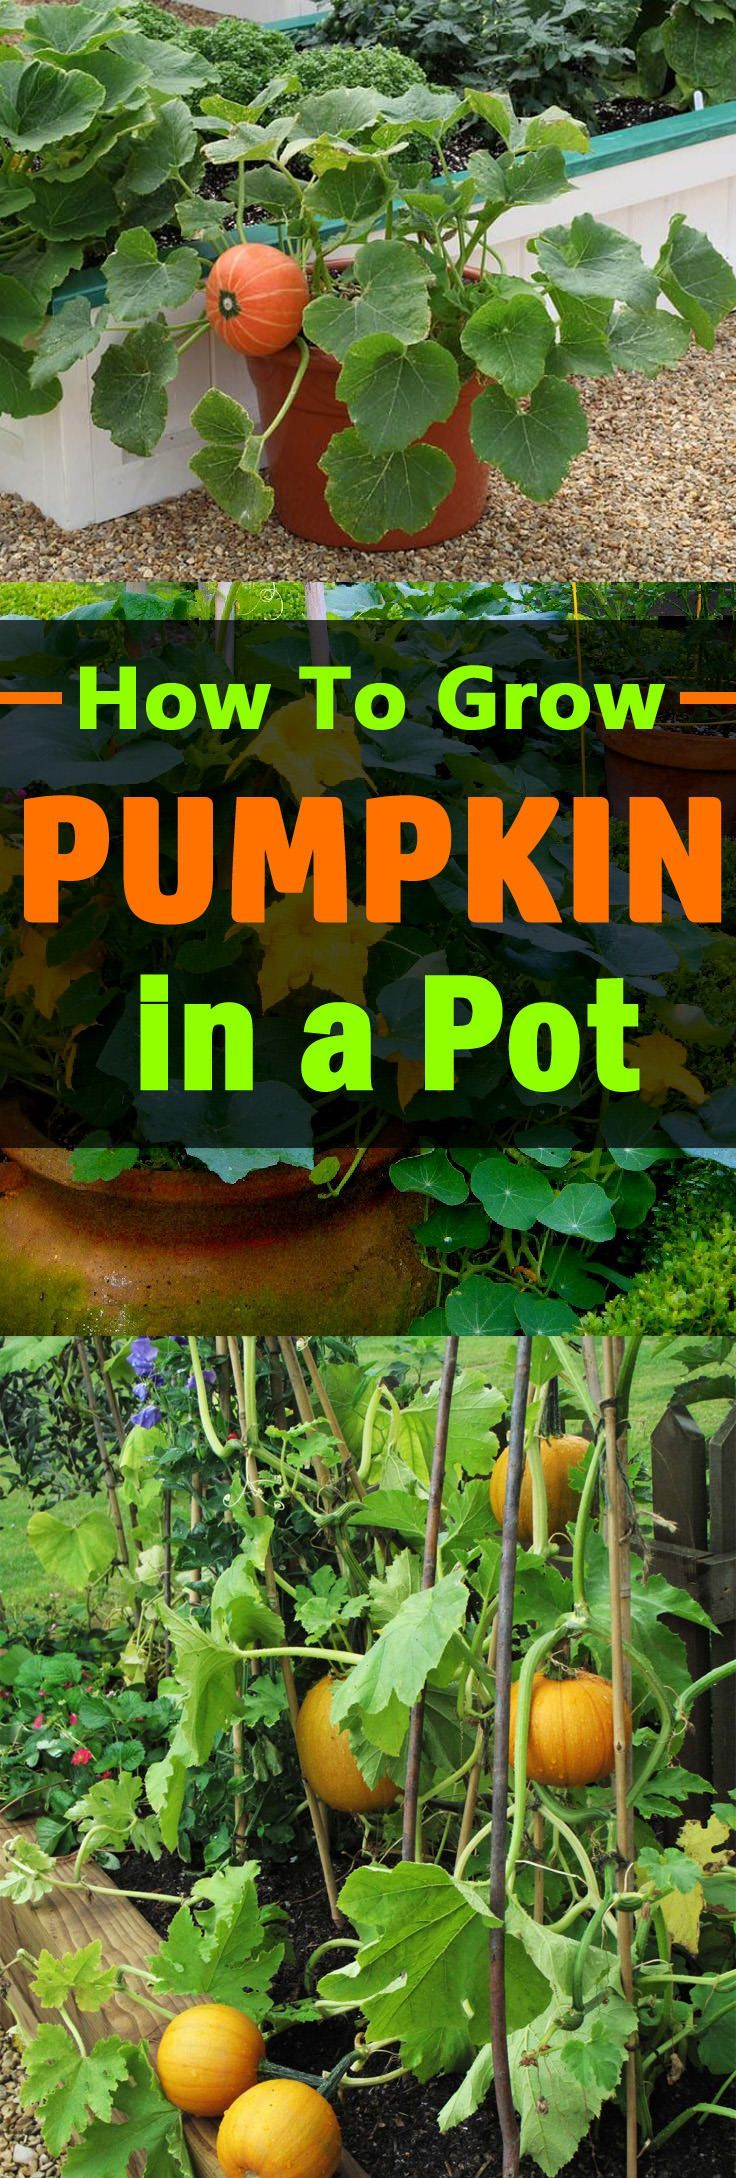 growing pumpkins in containers large containersgarden tipsgarden ideasgarden